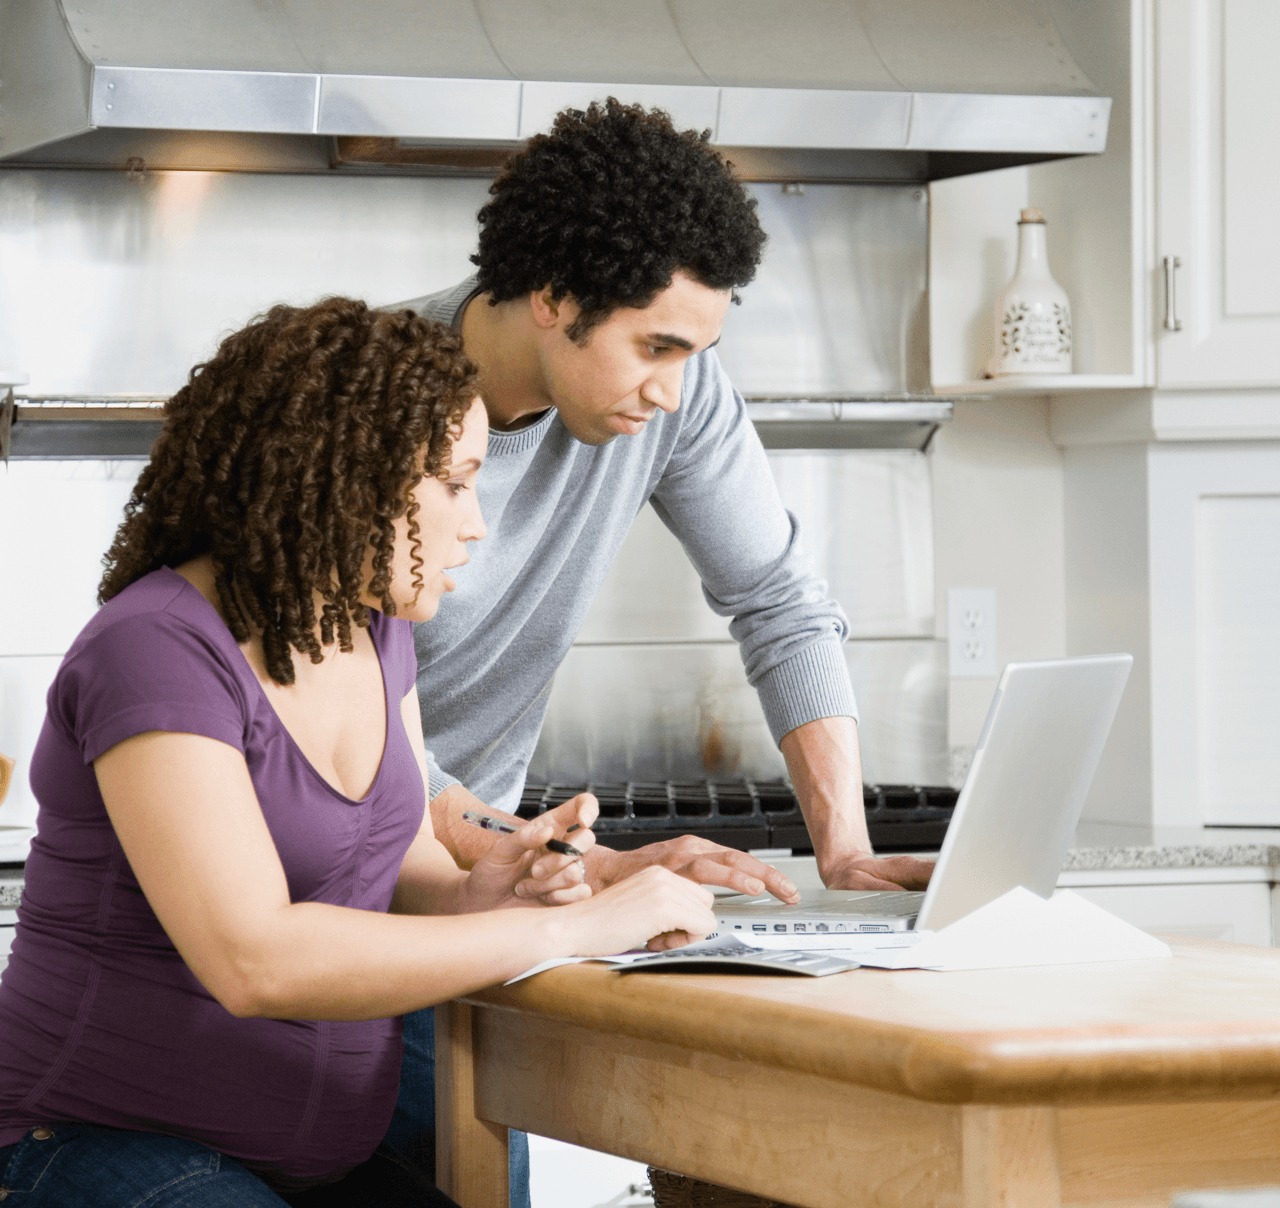 Feeling Down About Payments? These Programs Support Home Buyers Couple Image